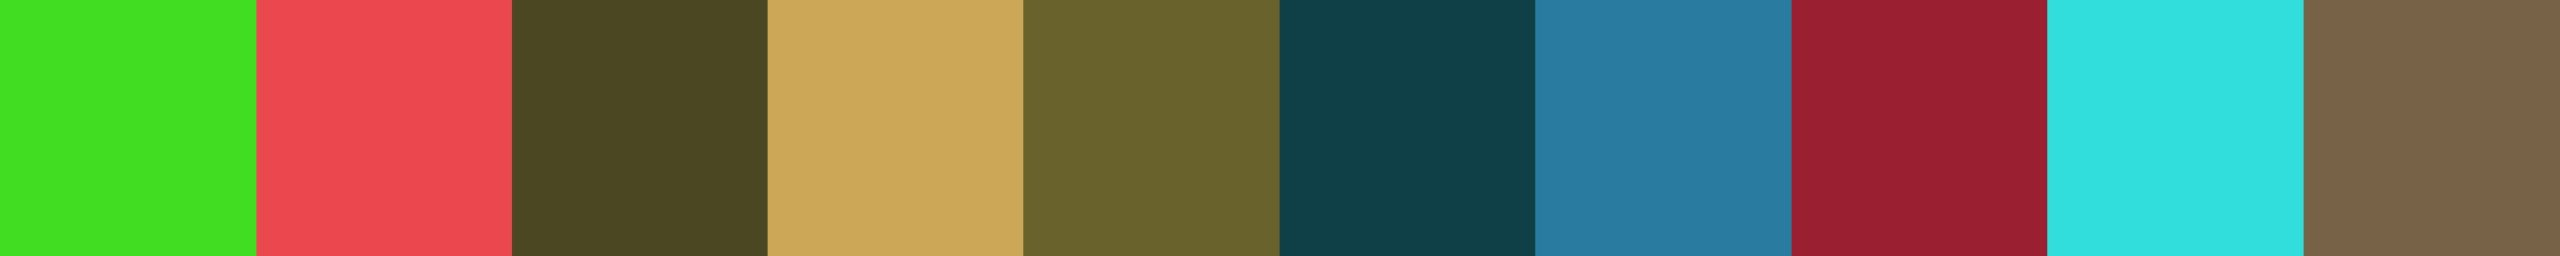 568 Phaidra Color Palette